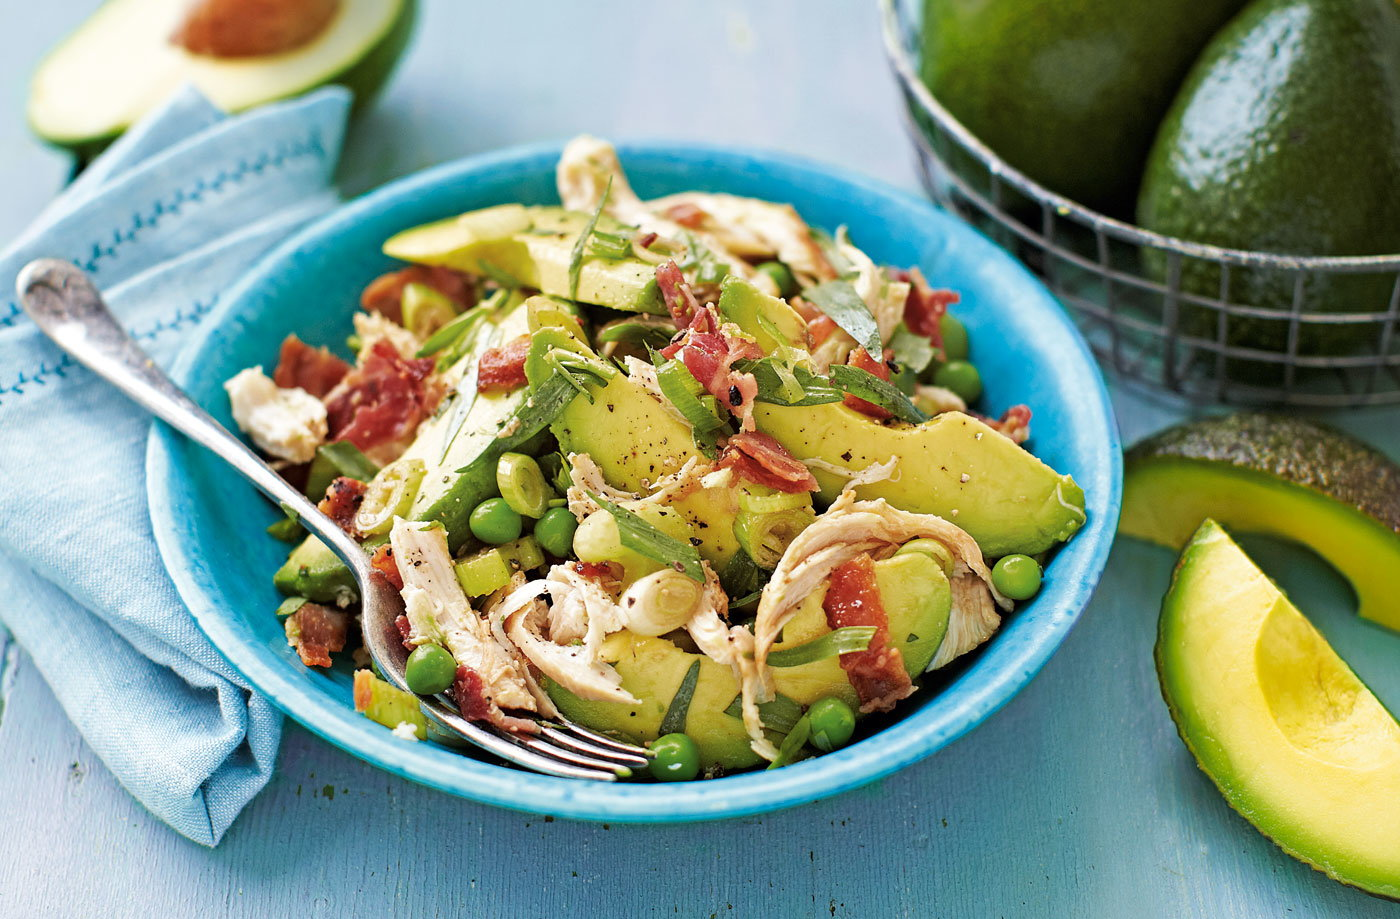 Chicken, avocado, bacon and tarragon salad recipe